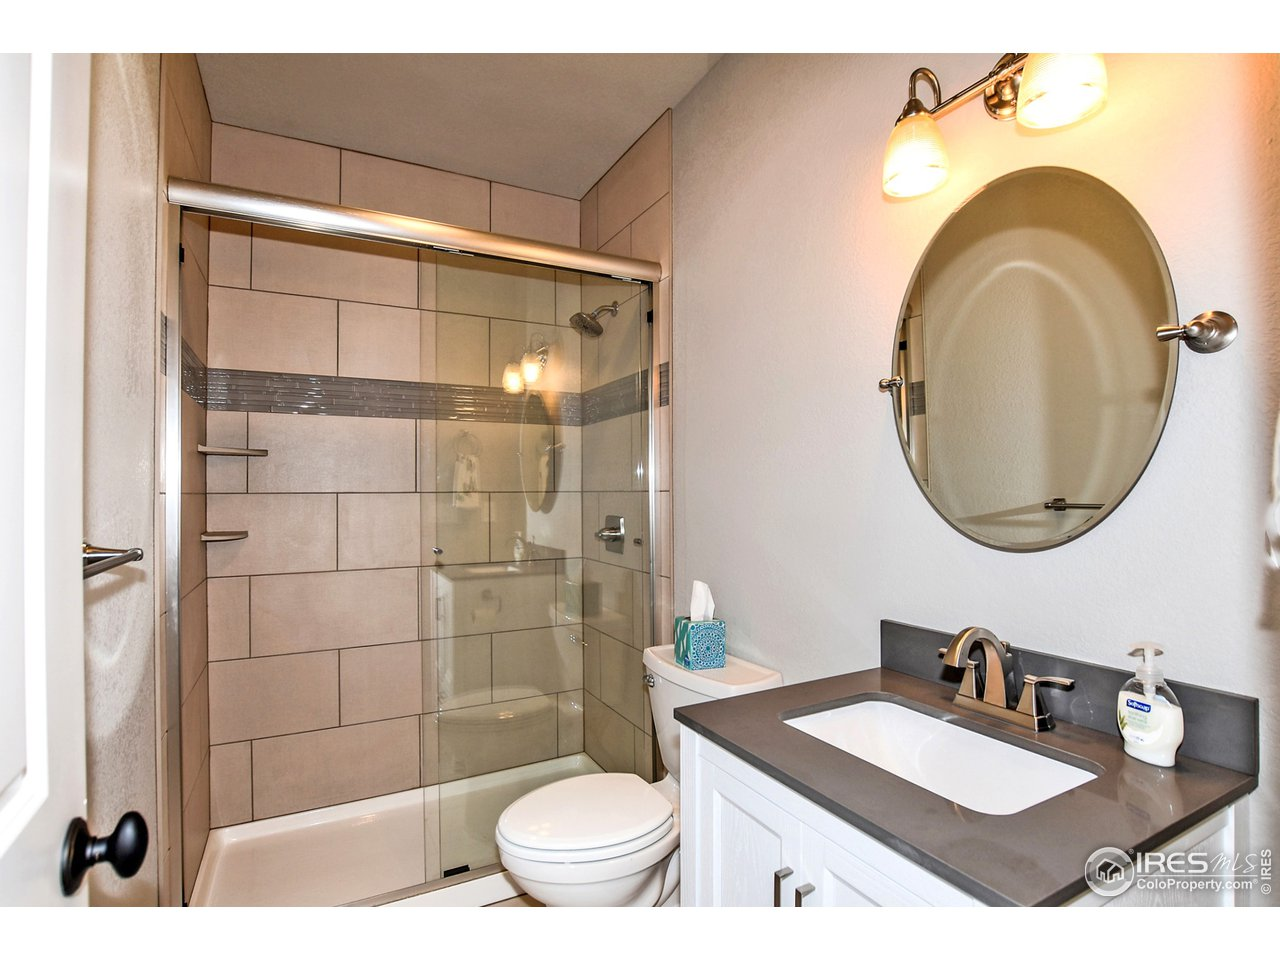 Great sized 3/4 bathroom attached to the 4th bedroom or additional living space.